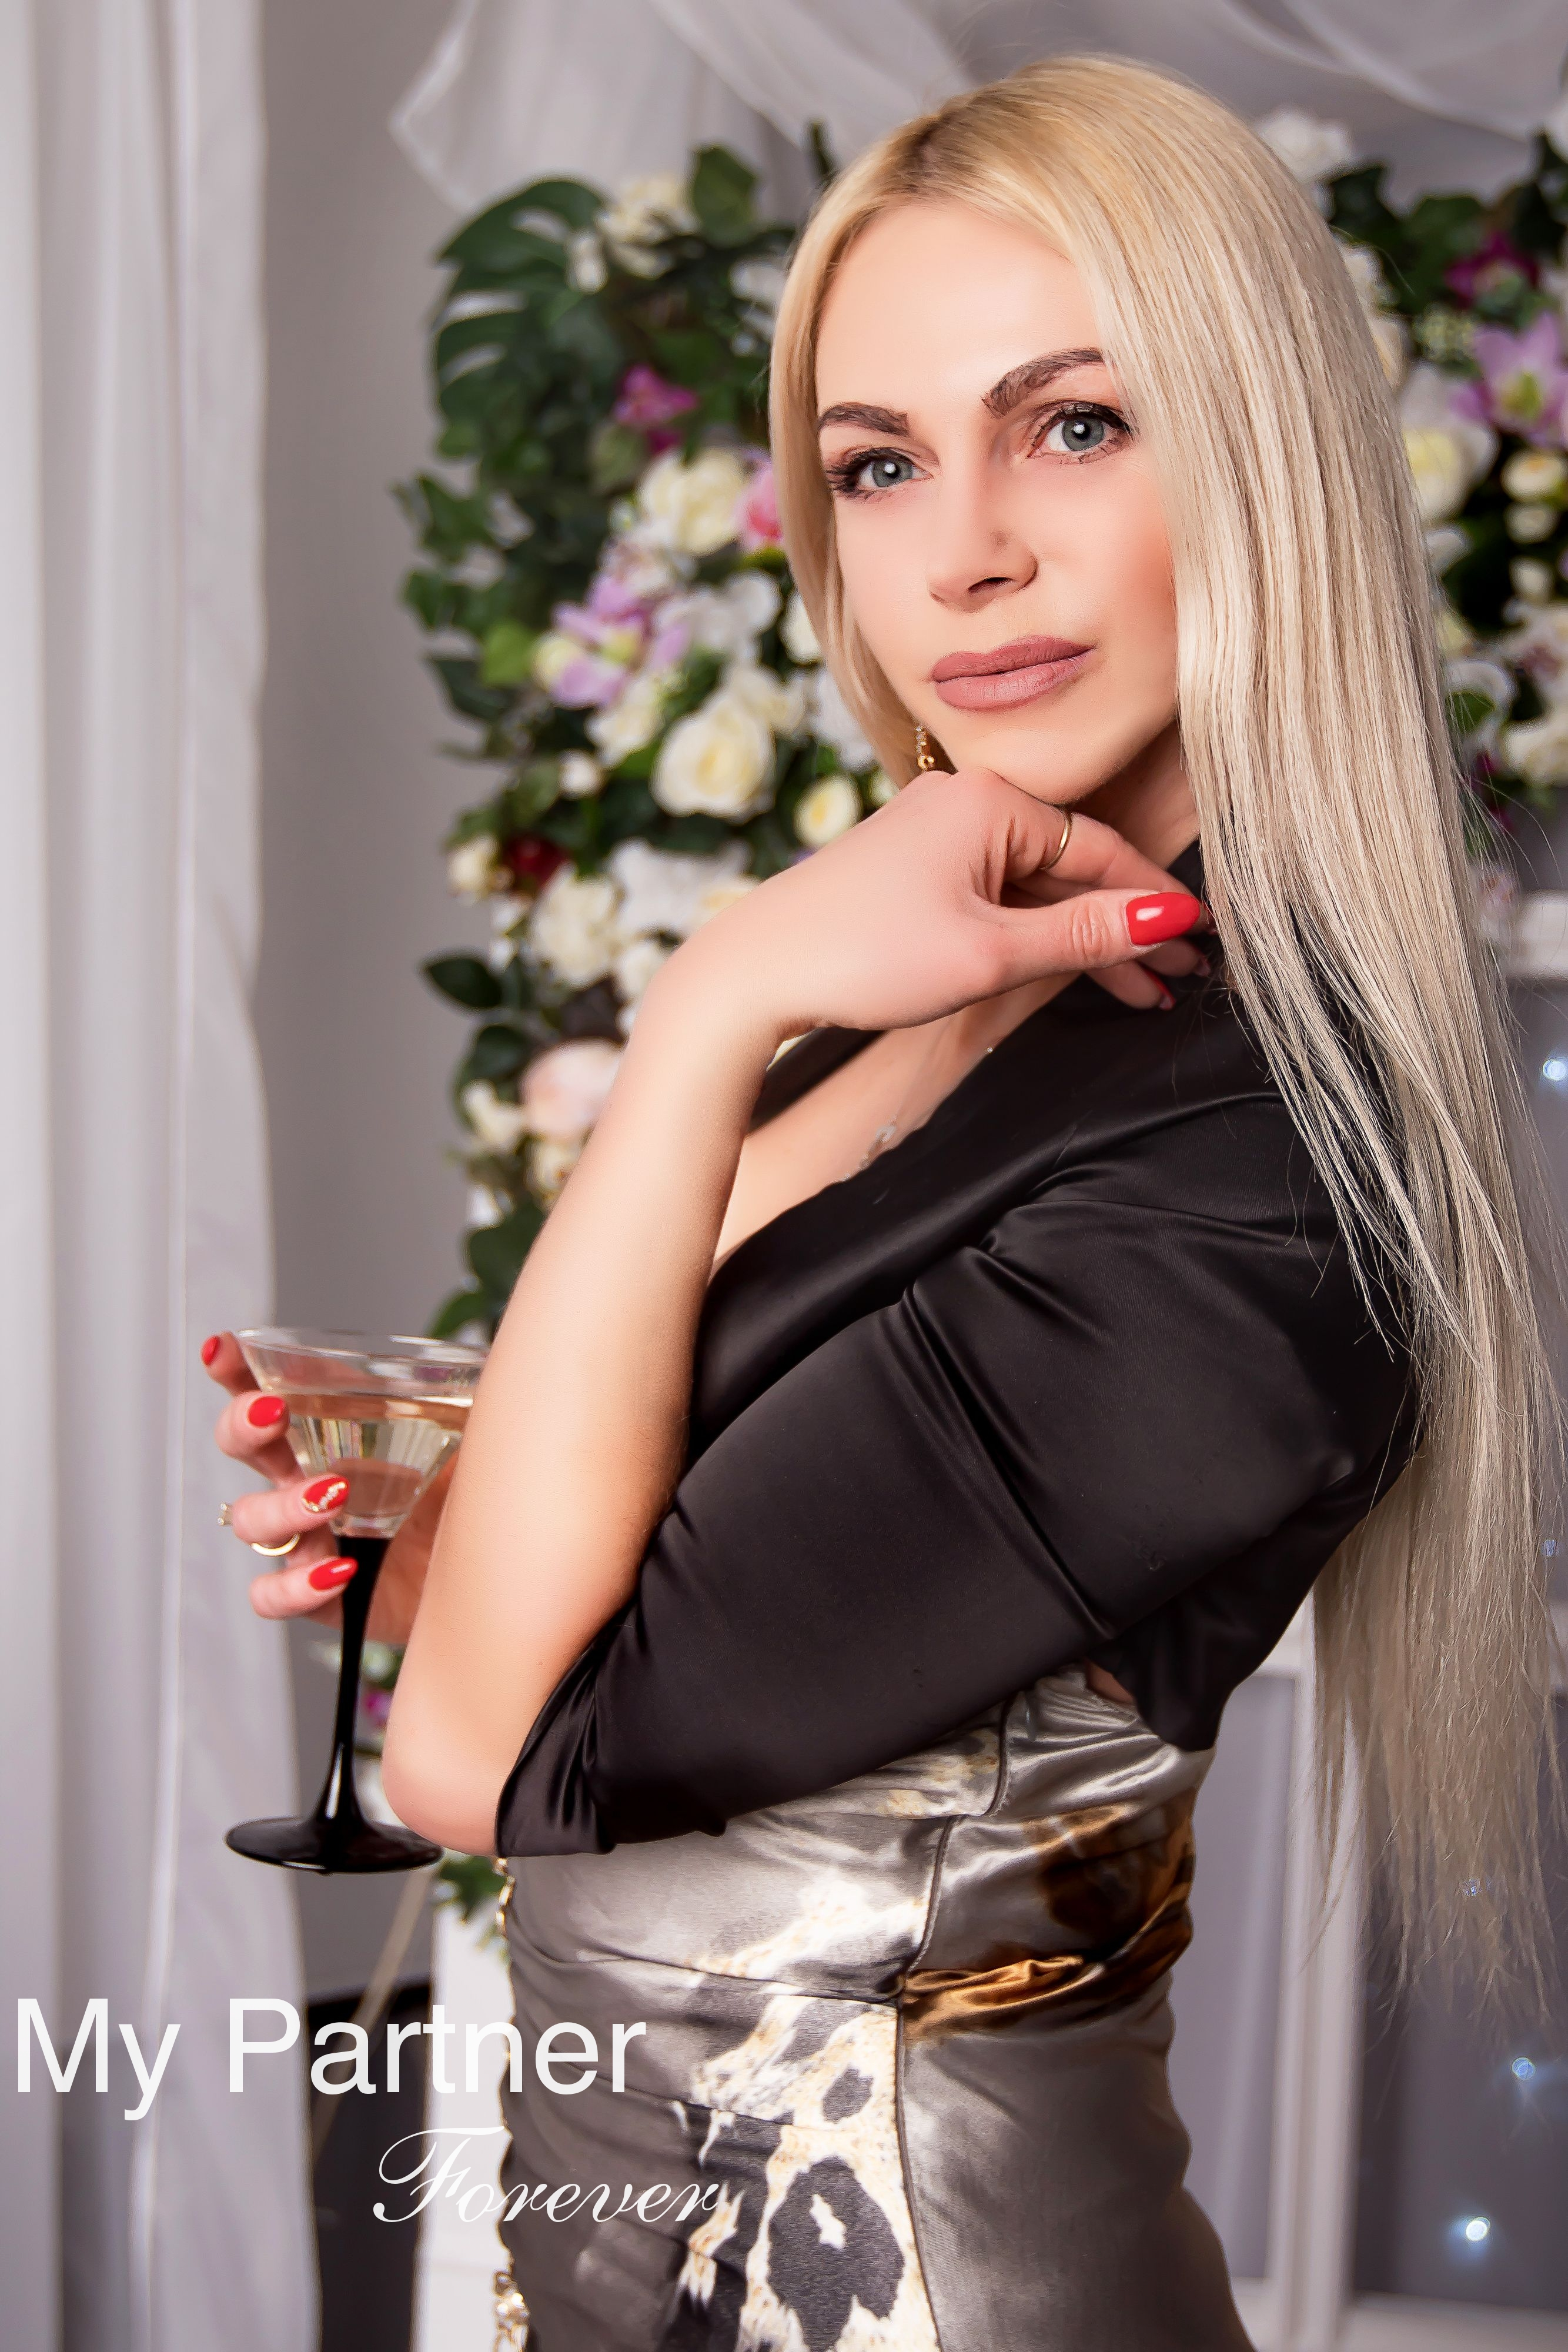 Datingsite to Meet Pretty Belarusian Girl Nataliya from Grodno, Belarus